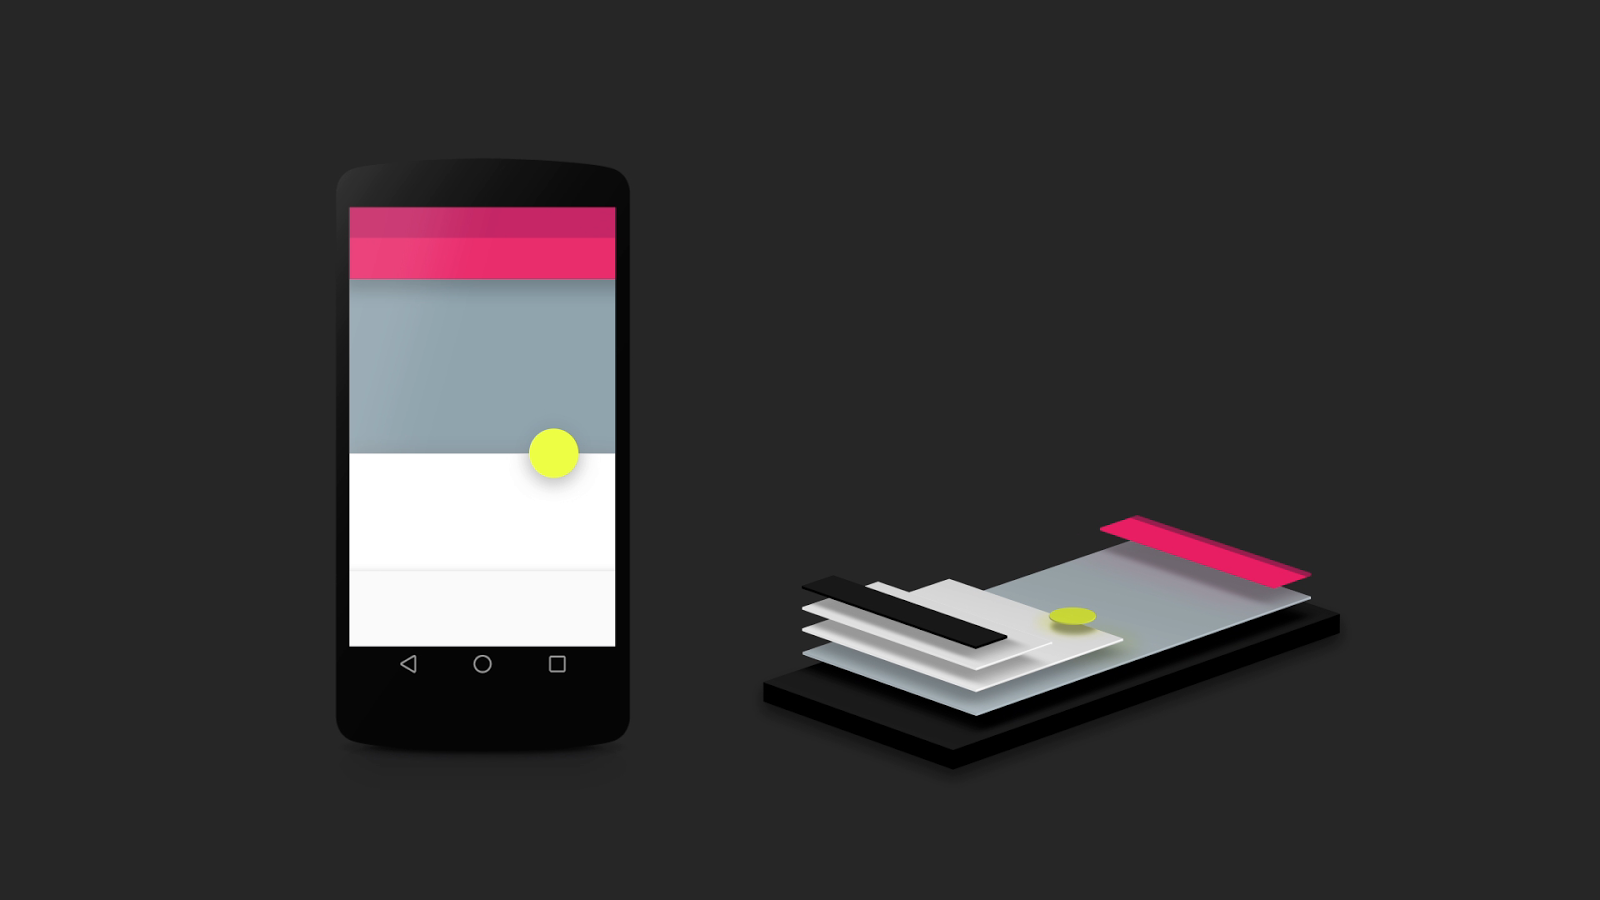 Layer in Android L